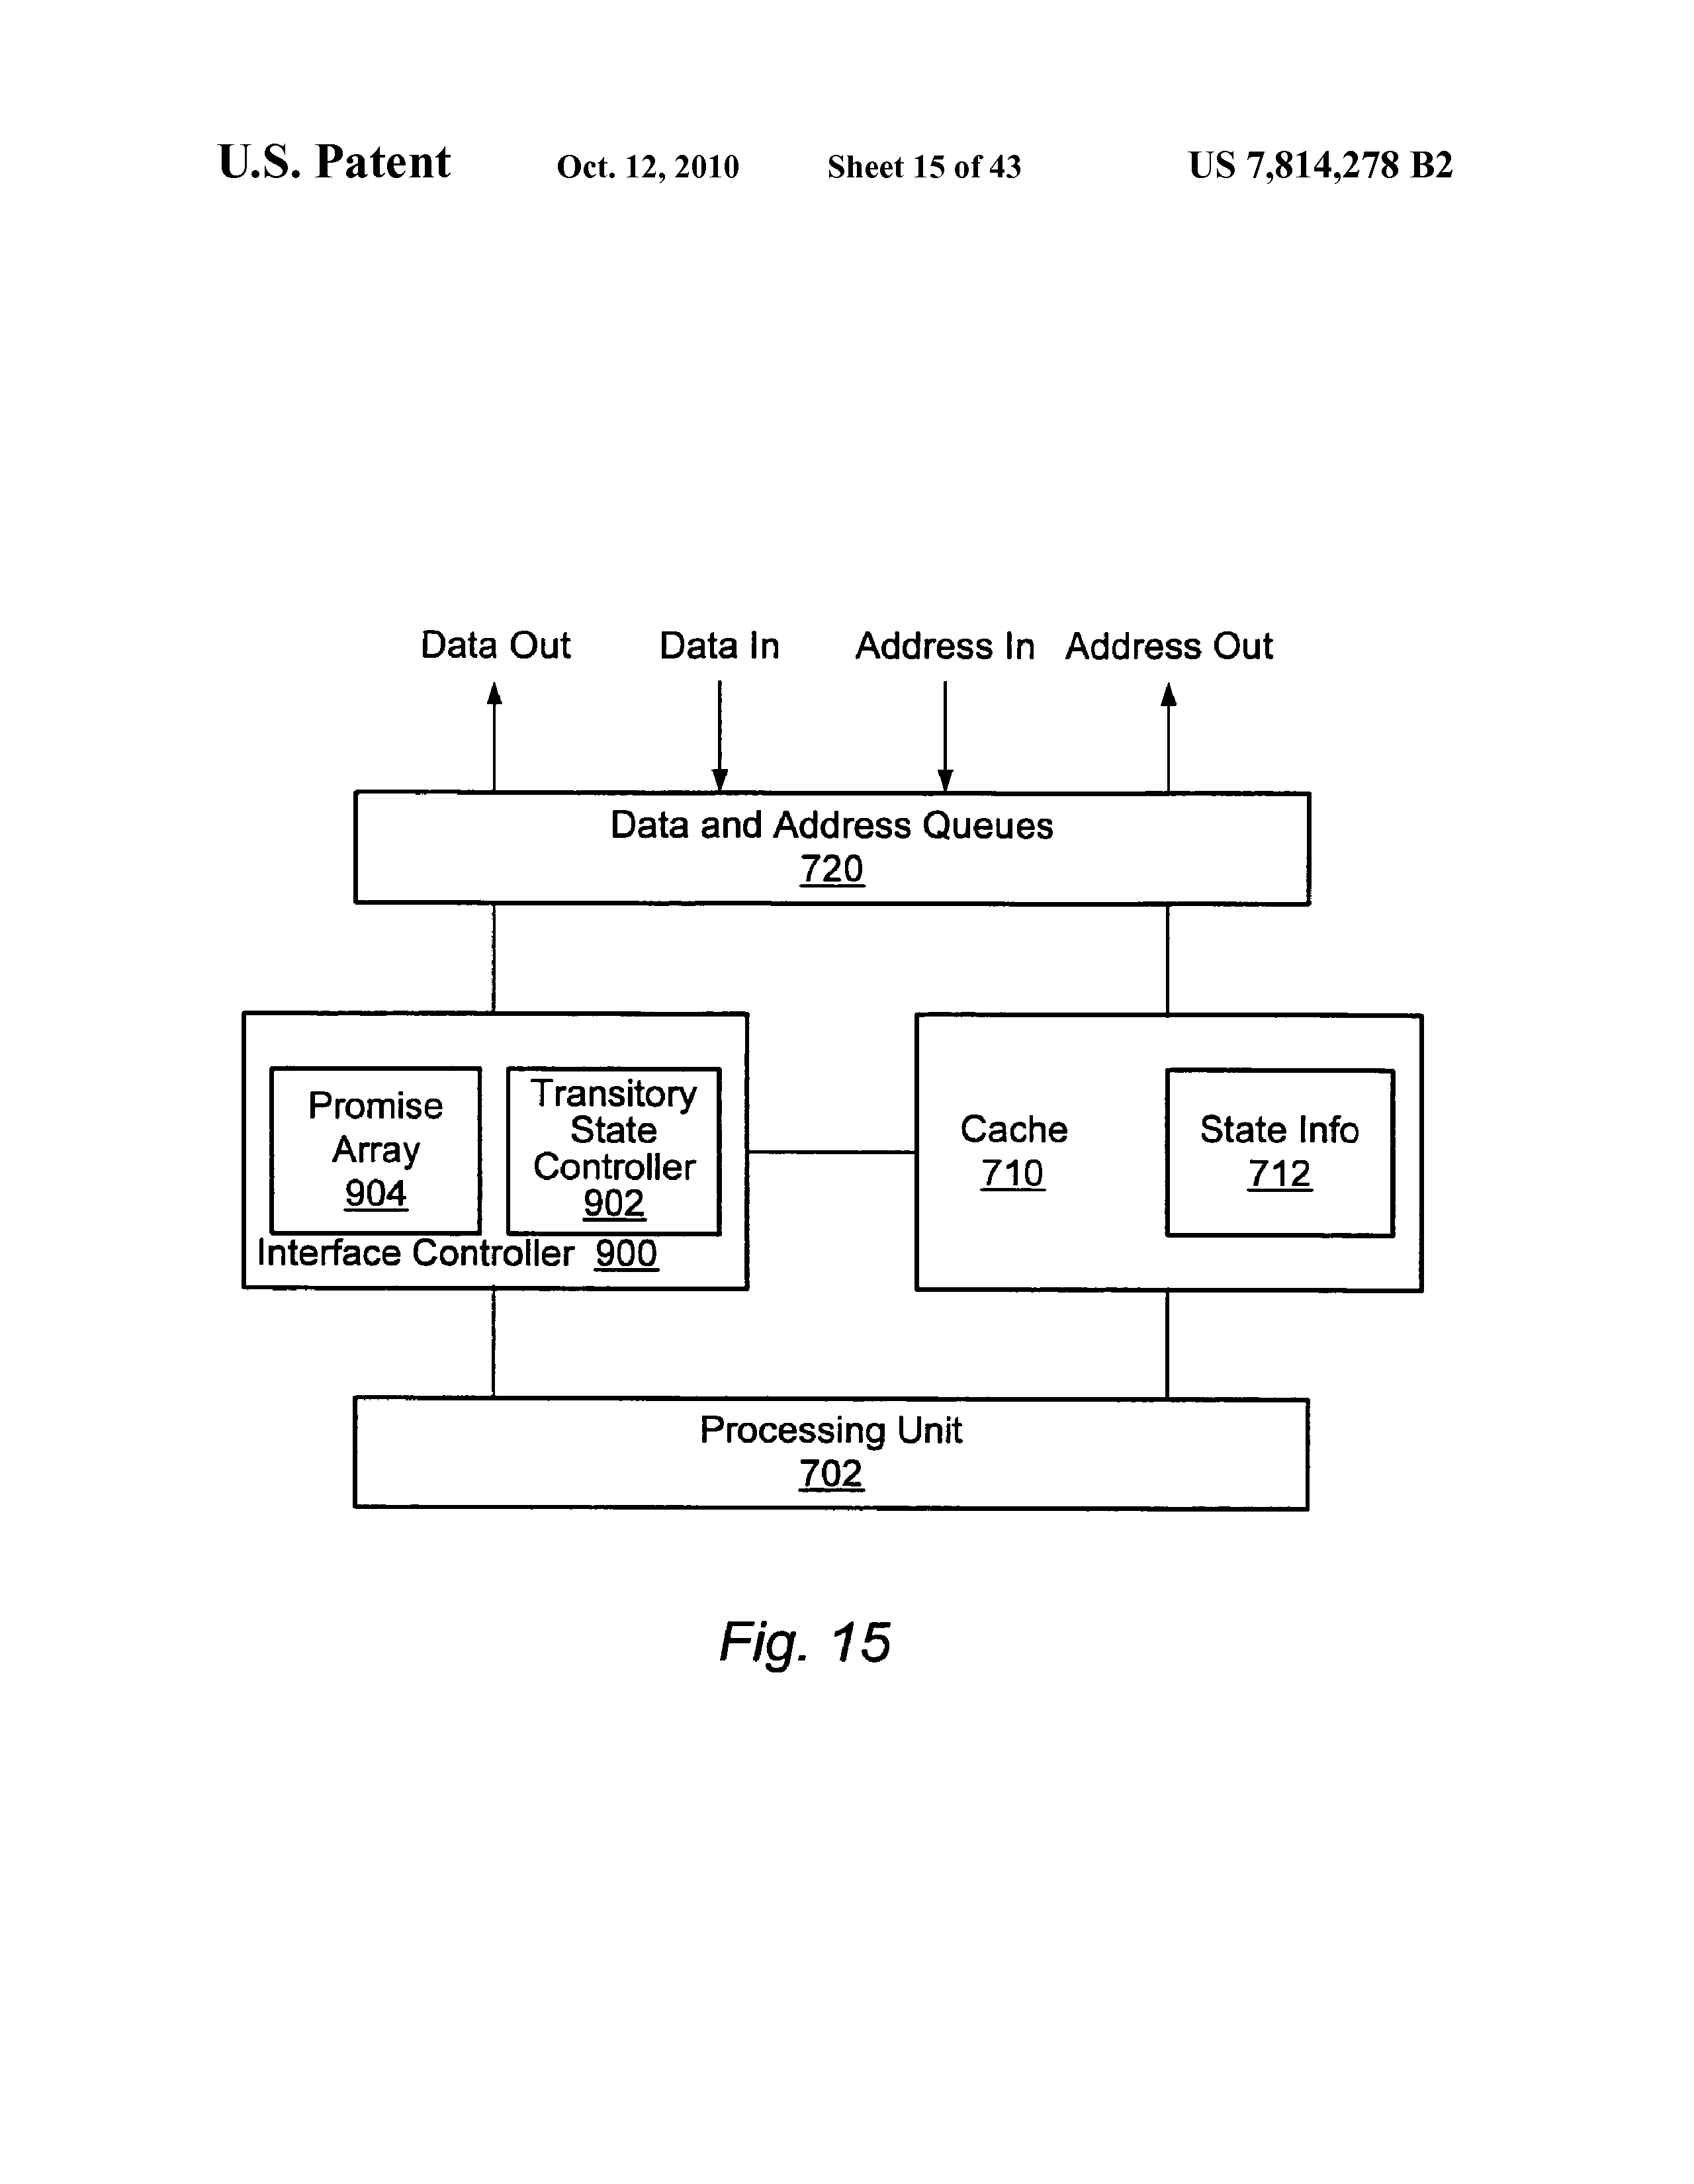 US 7814278 B2 - Multi-node System With Response Information